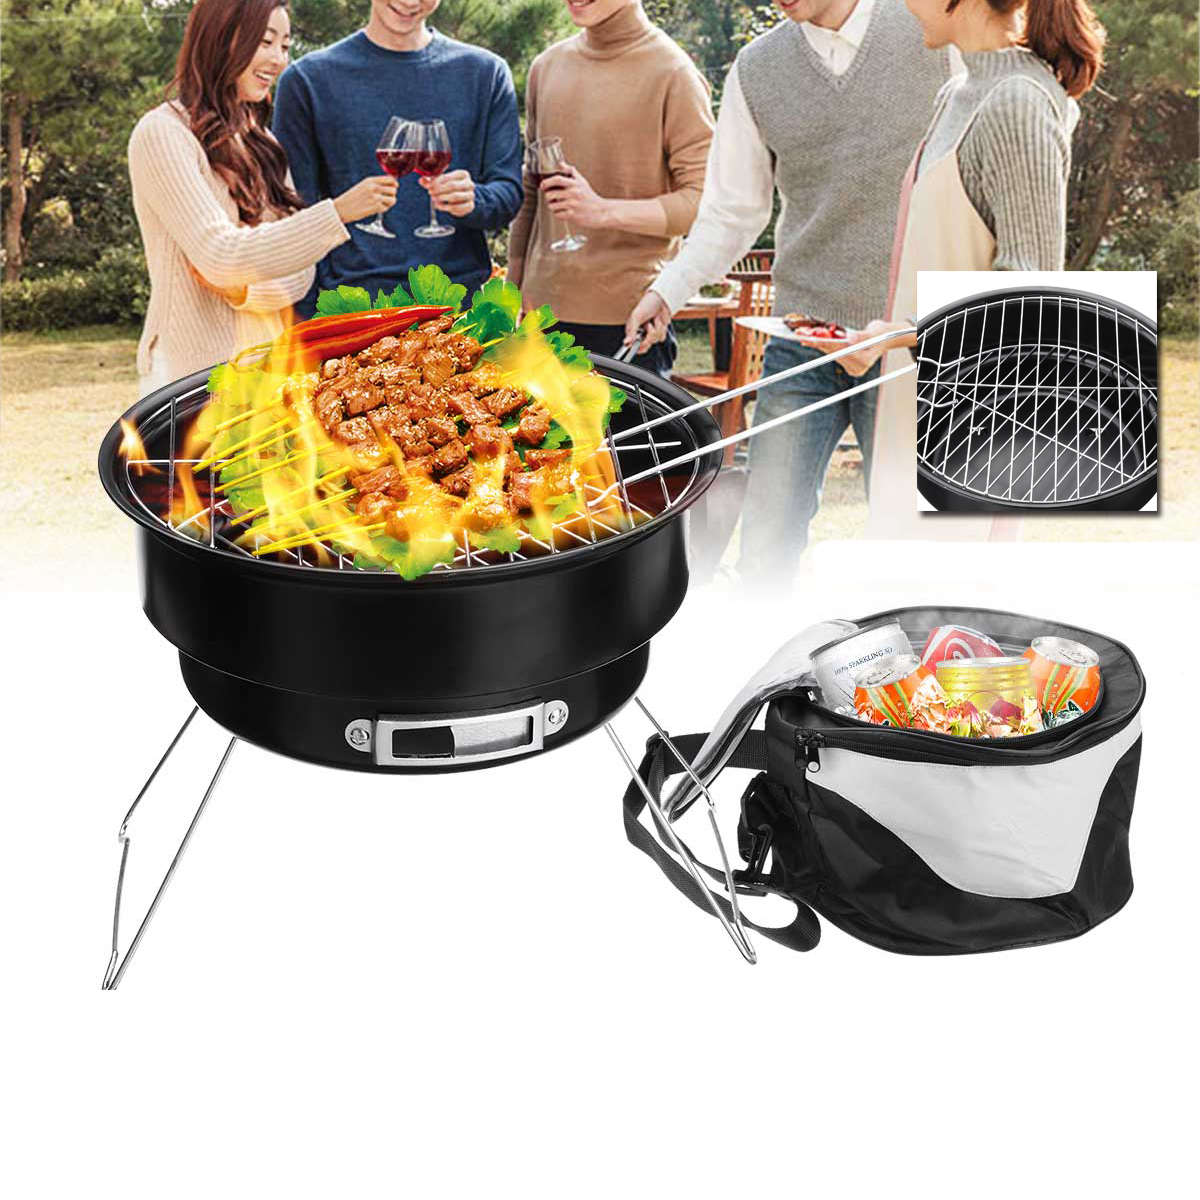 Other Camping & Outdoors - 2 In 1 Portable Barbecue Oven Folding BBQ Grill With Cooler Bag ...